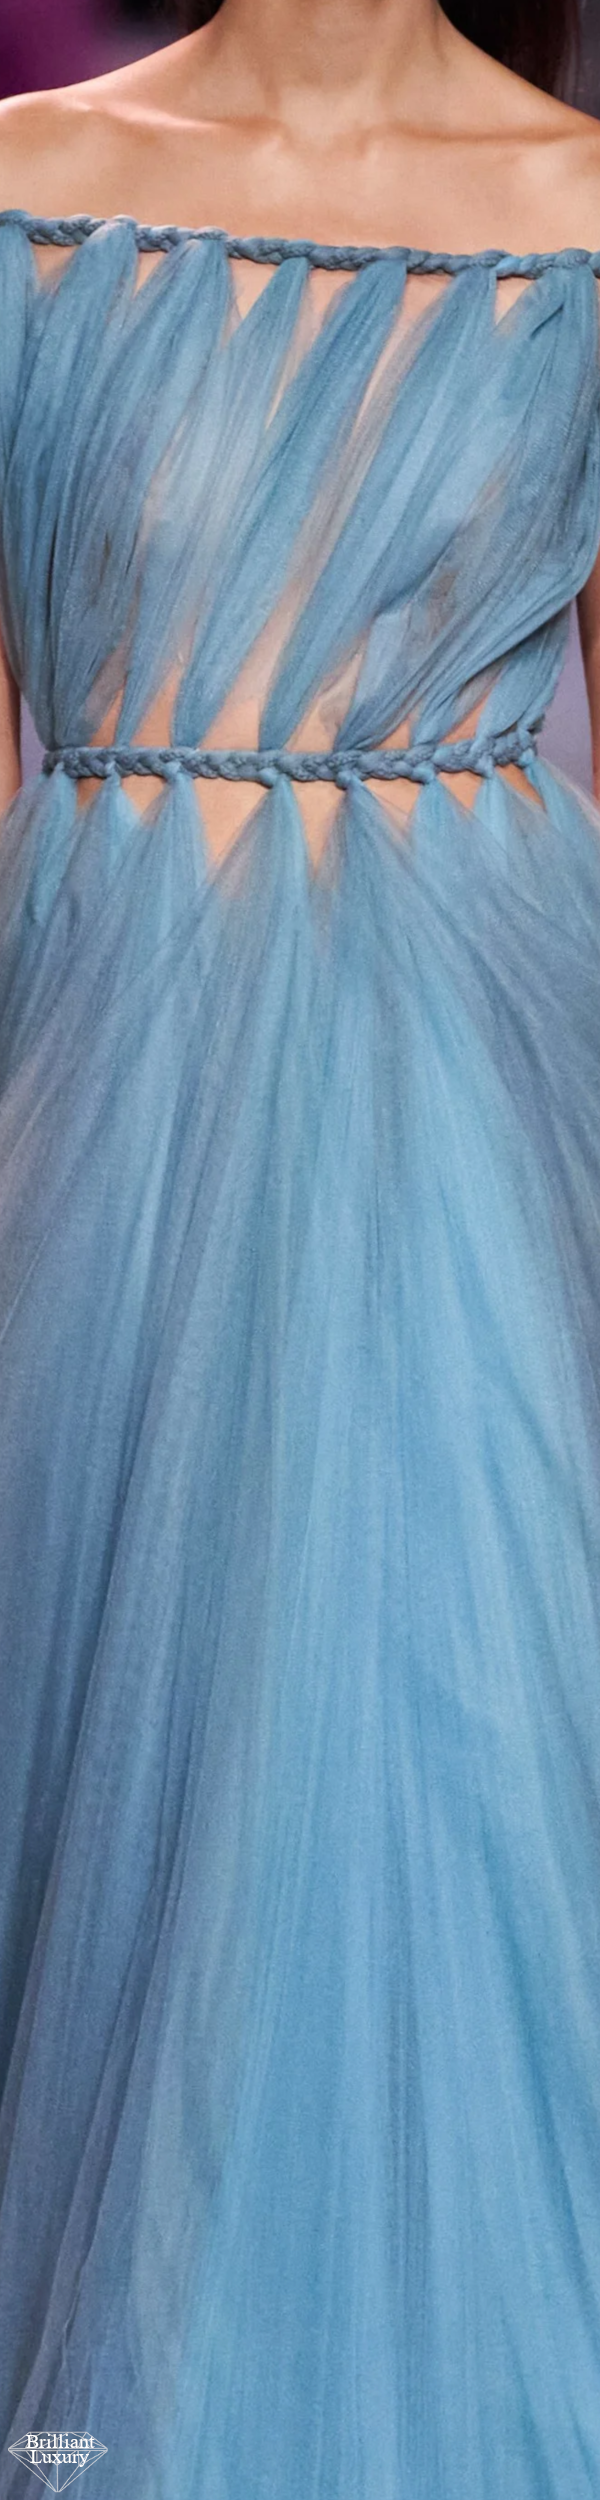 Dior Blue Braided Couture Gown Spring 2020 #fashion